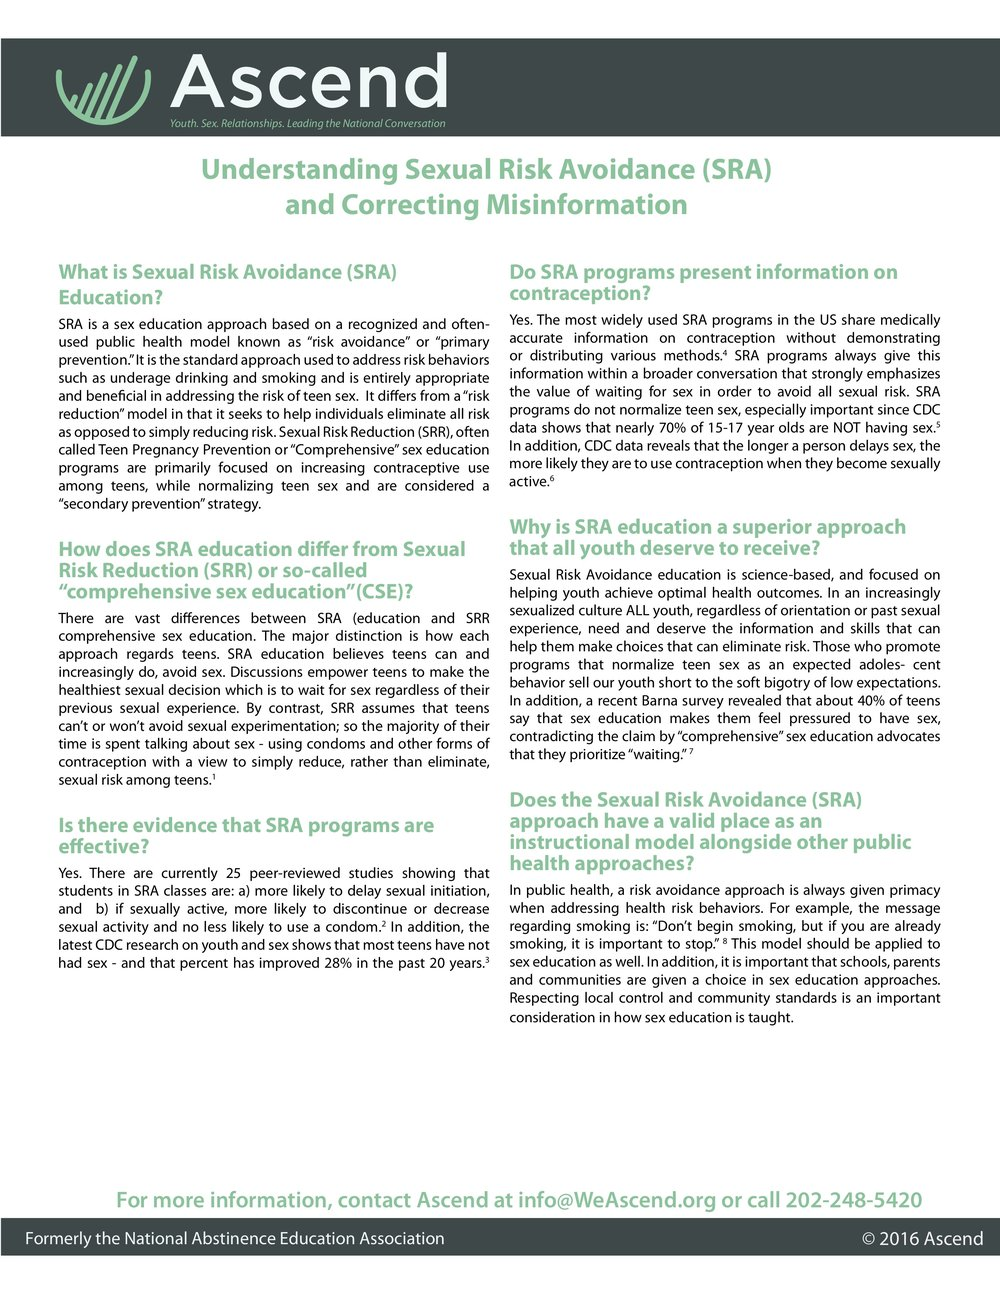 Understanding-SRA-and-the-misconceptions.jpg